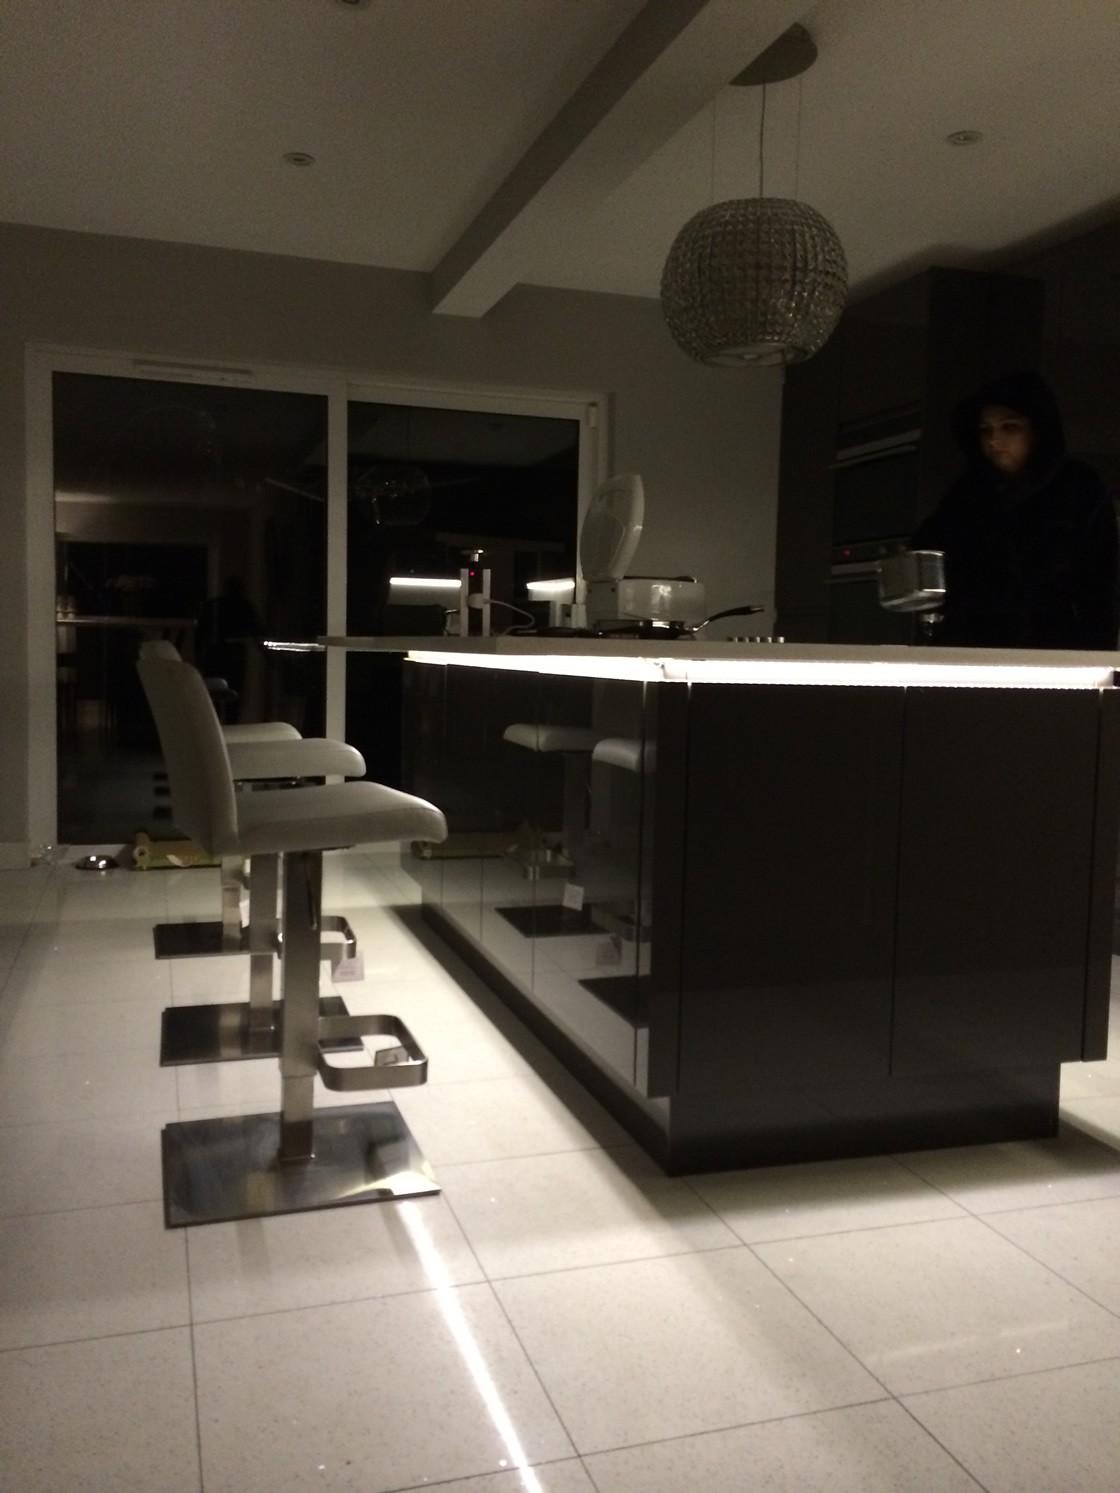 Handles-less Kitchen View of LED Light Strips on Island in Dark